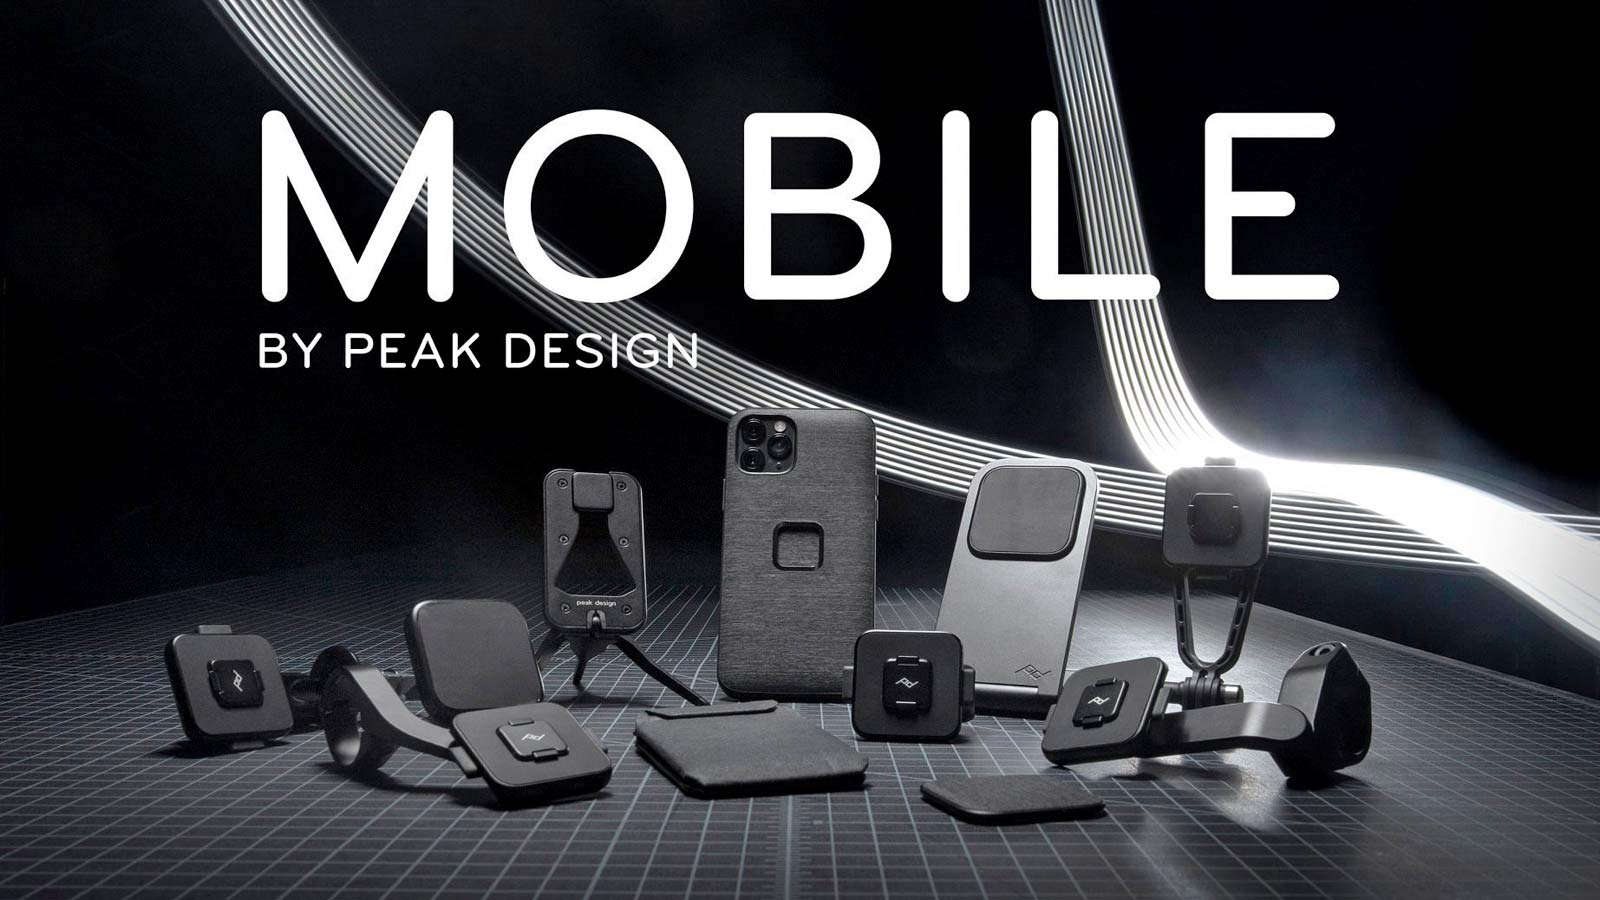 Mobile by Peak Design phone case and mounts, magnetic and secure locking mobile phone bike mounts everyday case charging adapters,series